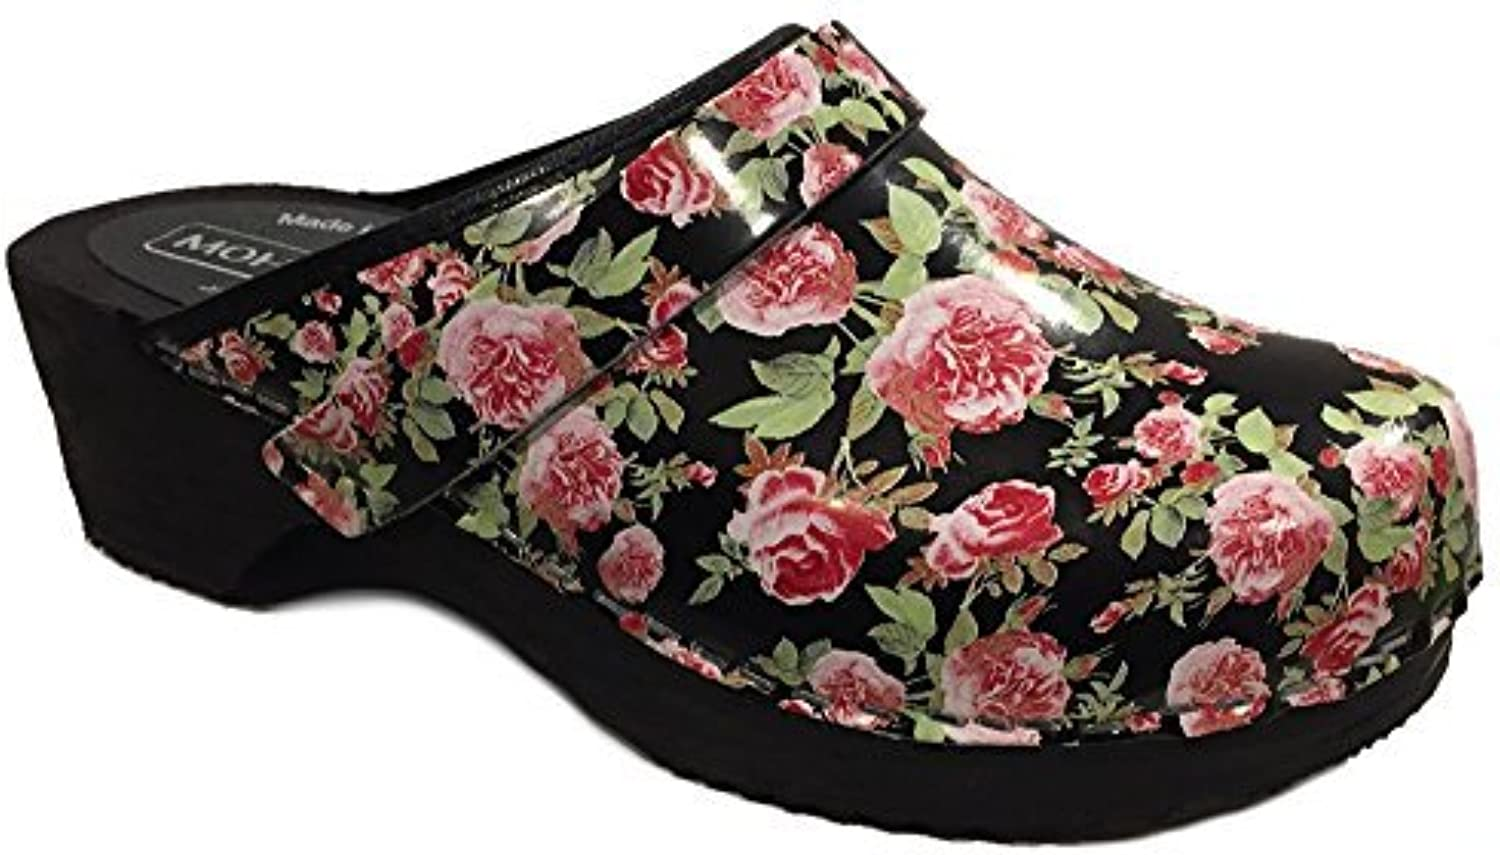 Moheda Toffeln 'pinknna' Floral Clogs - Fancy Black